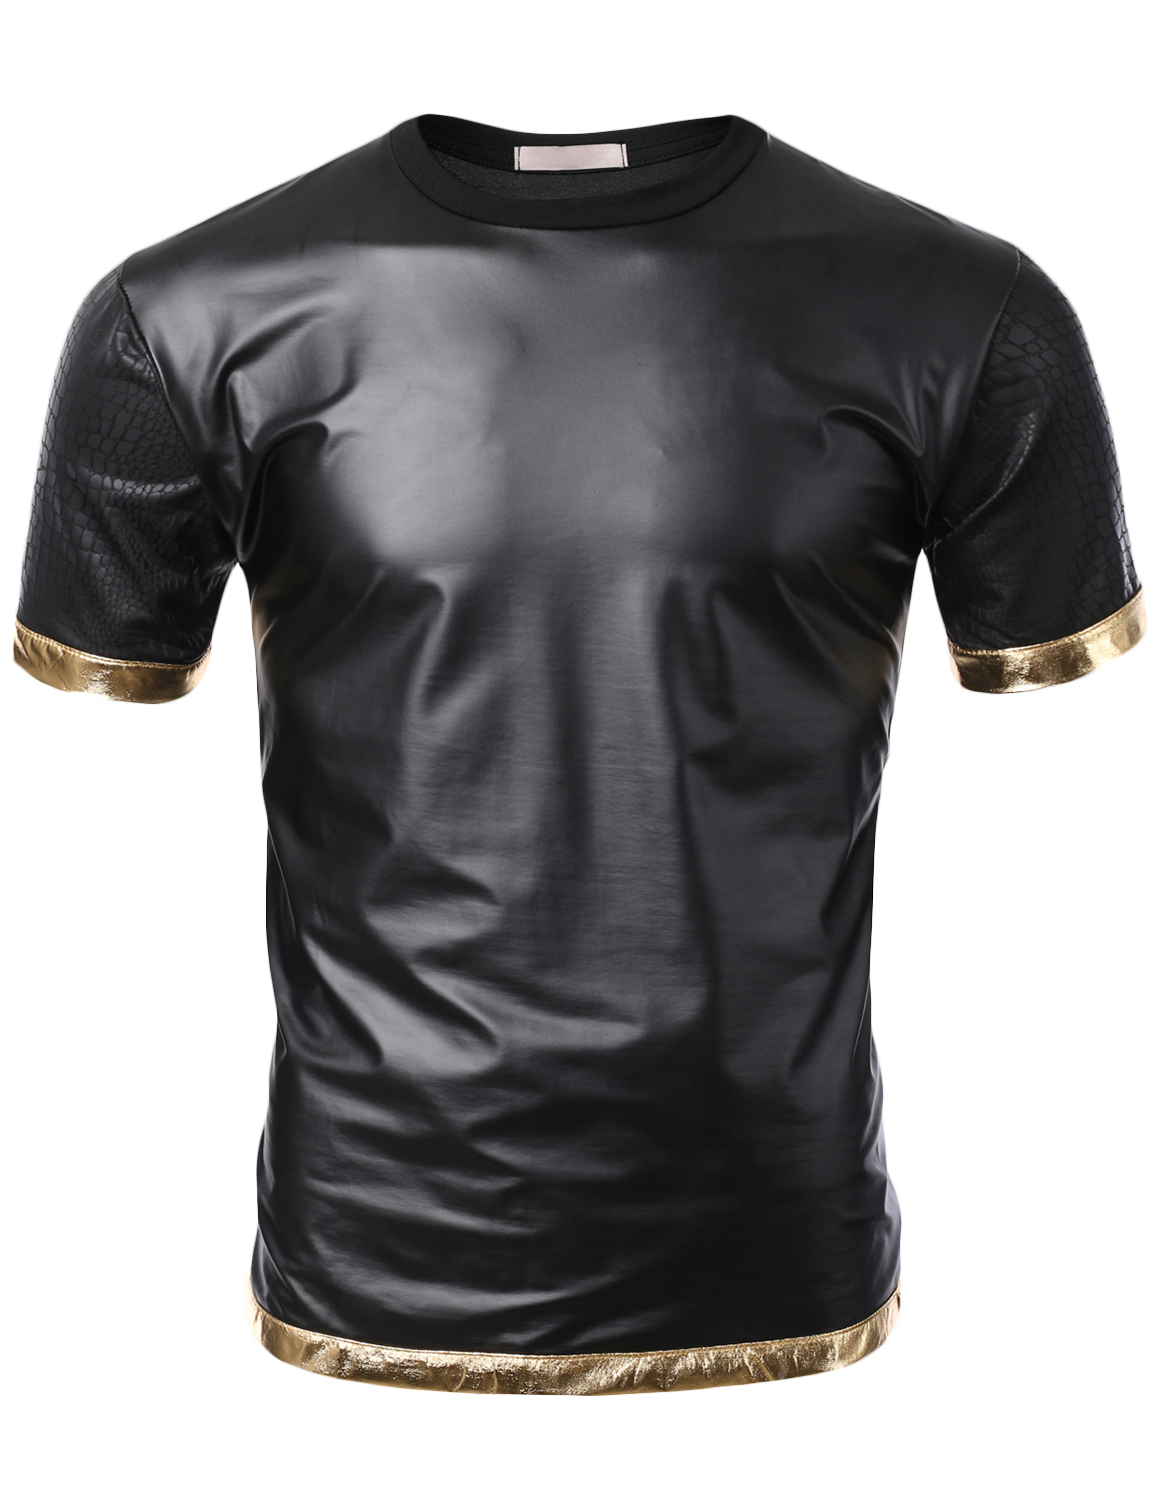 d61ad37940550 SMITHJAY Mens Hip-Hop Black Pearl Snake Leather Sleeve T-shirt with Gold  Trim  smithjay